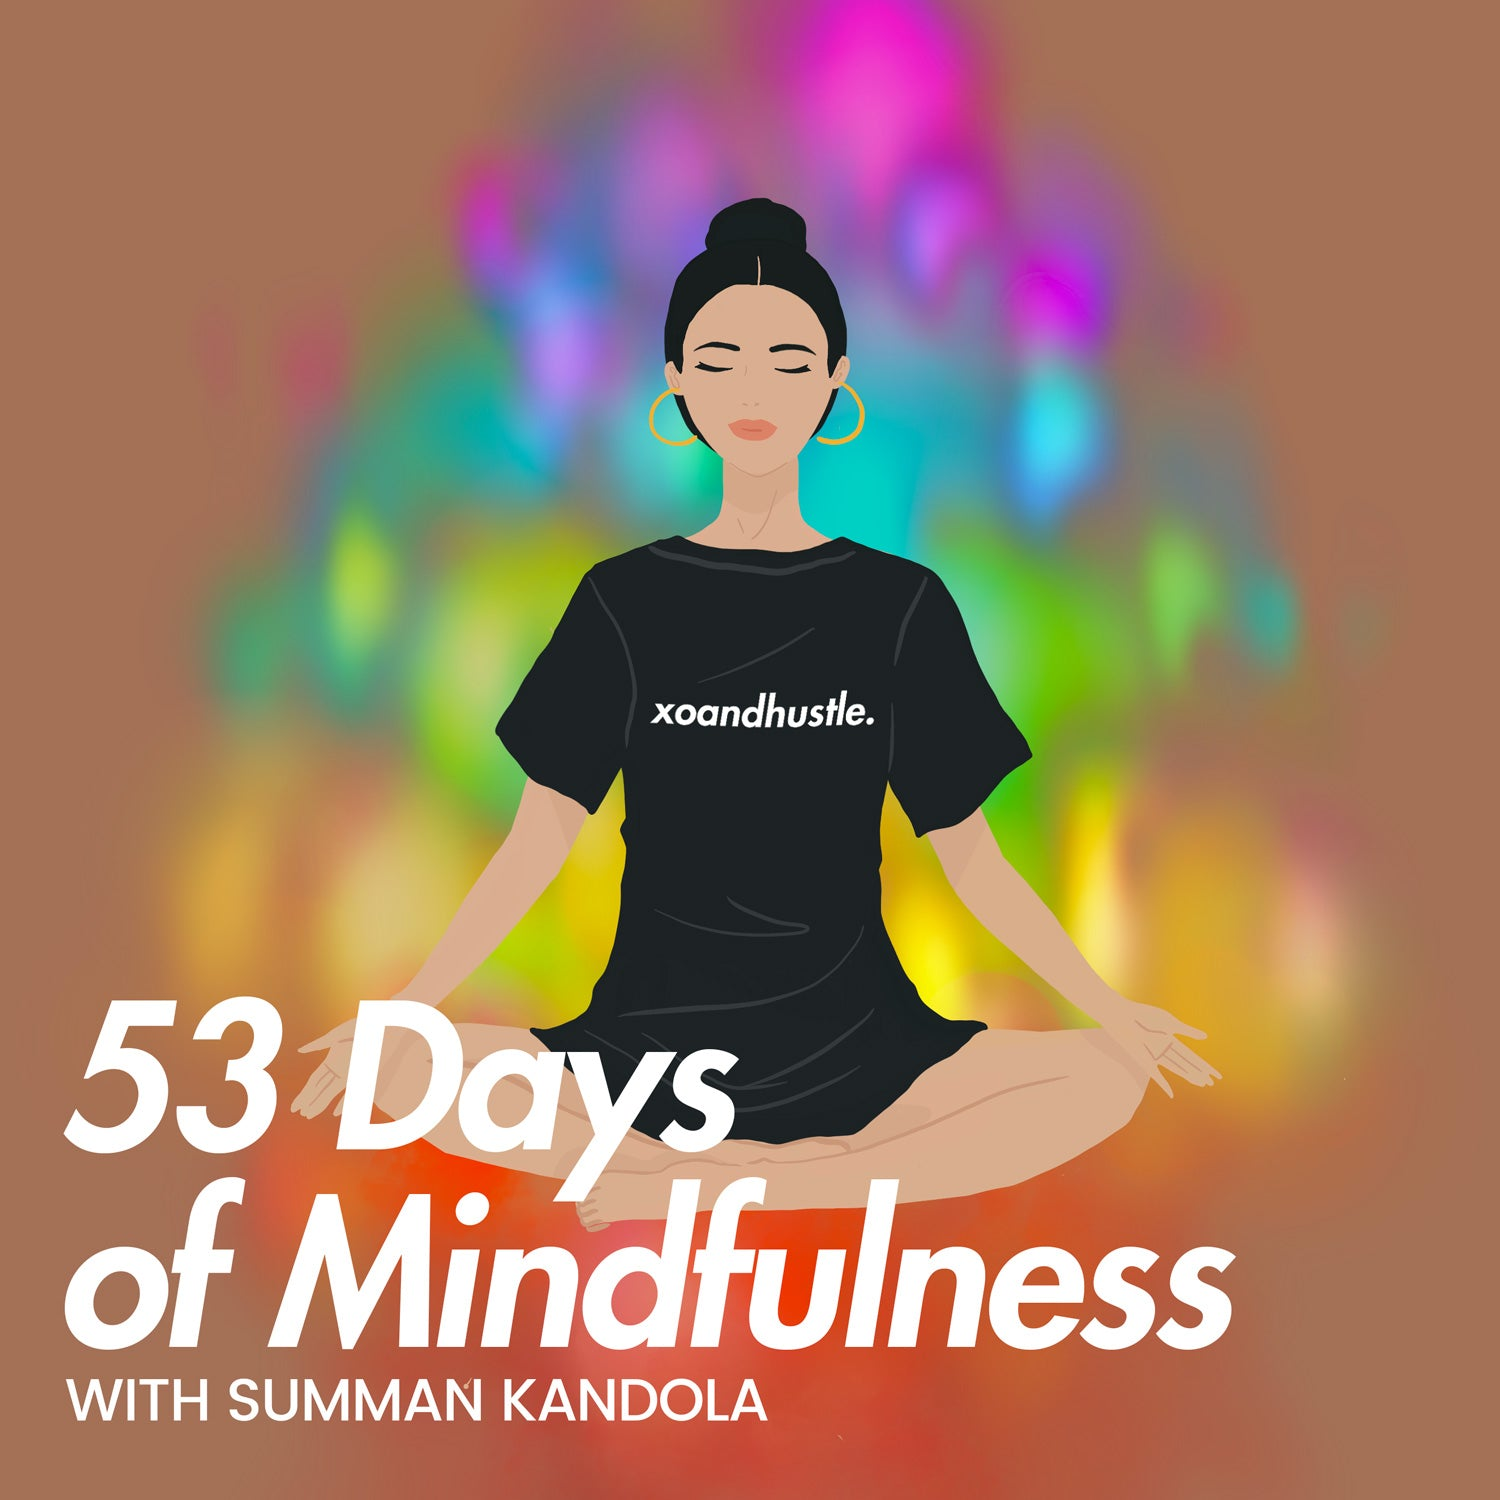 53 Days of Mindfulness